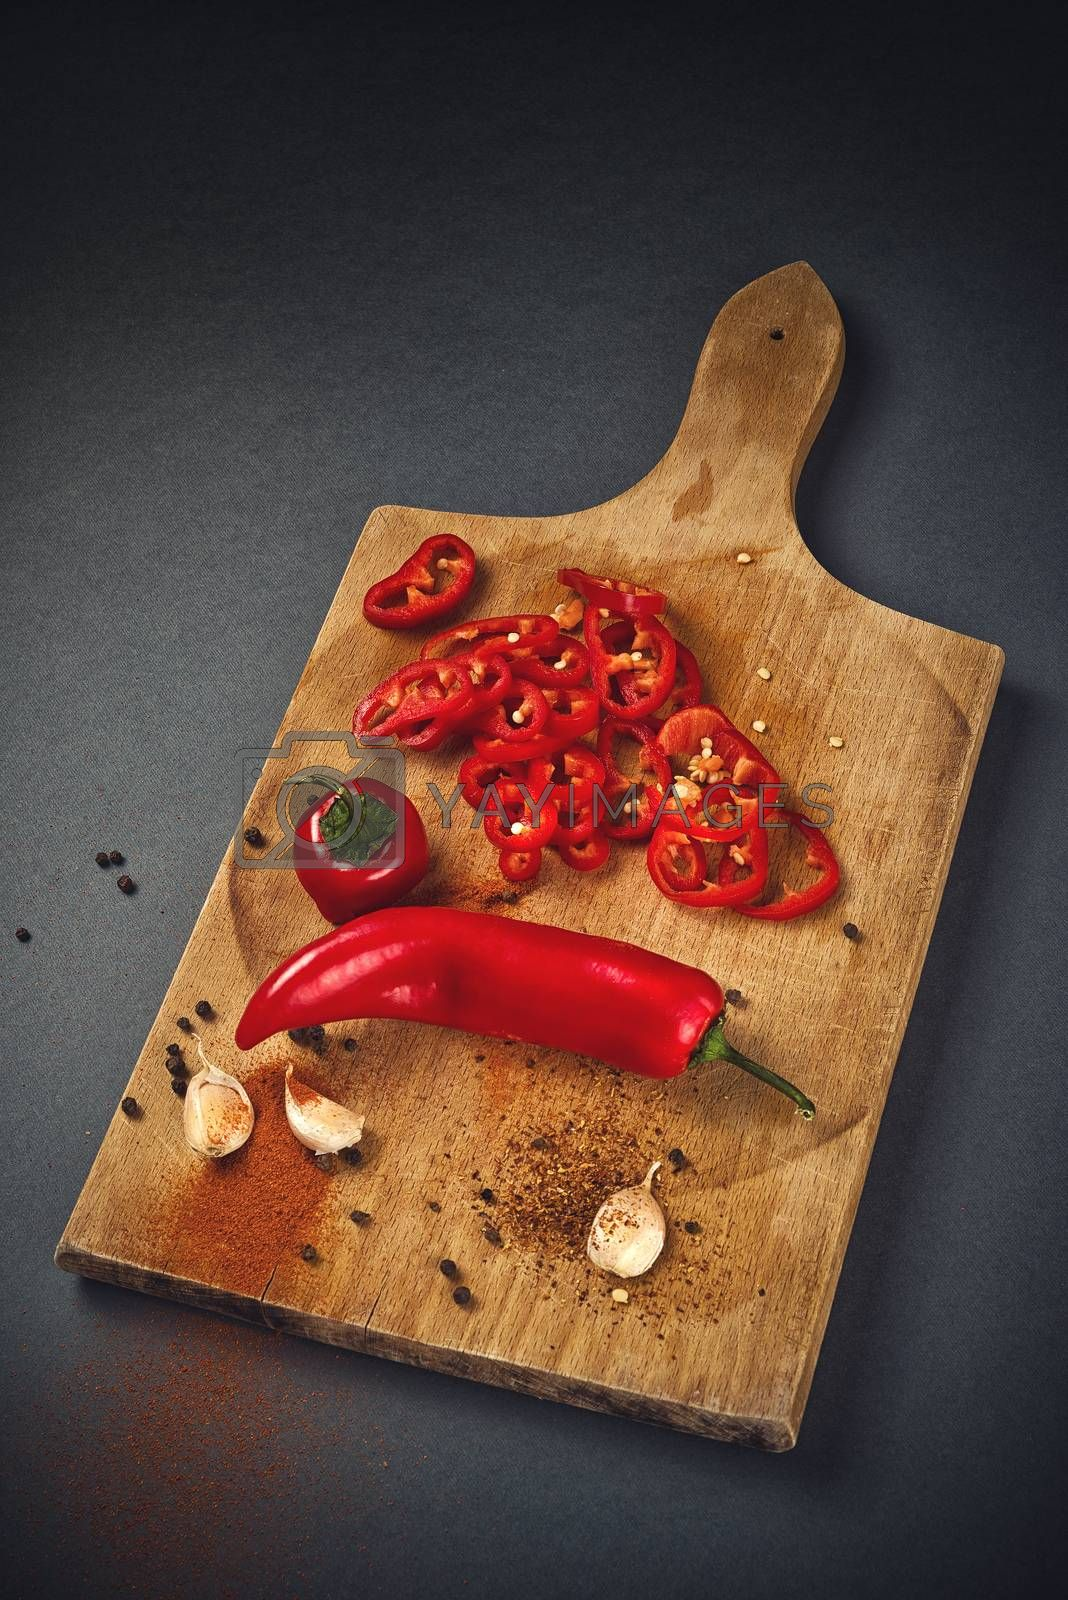 Pepper and Garlic as Hot Food Ingredients for Piquant Cuisine by stevanovicigor